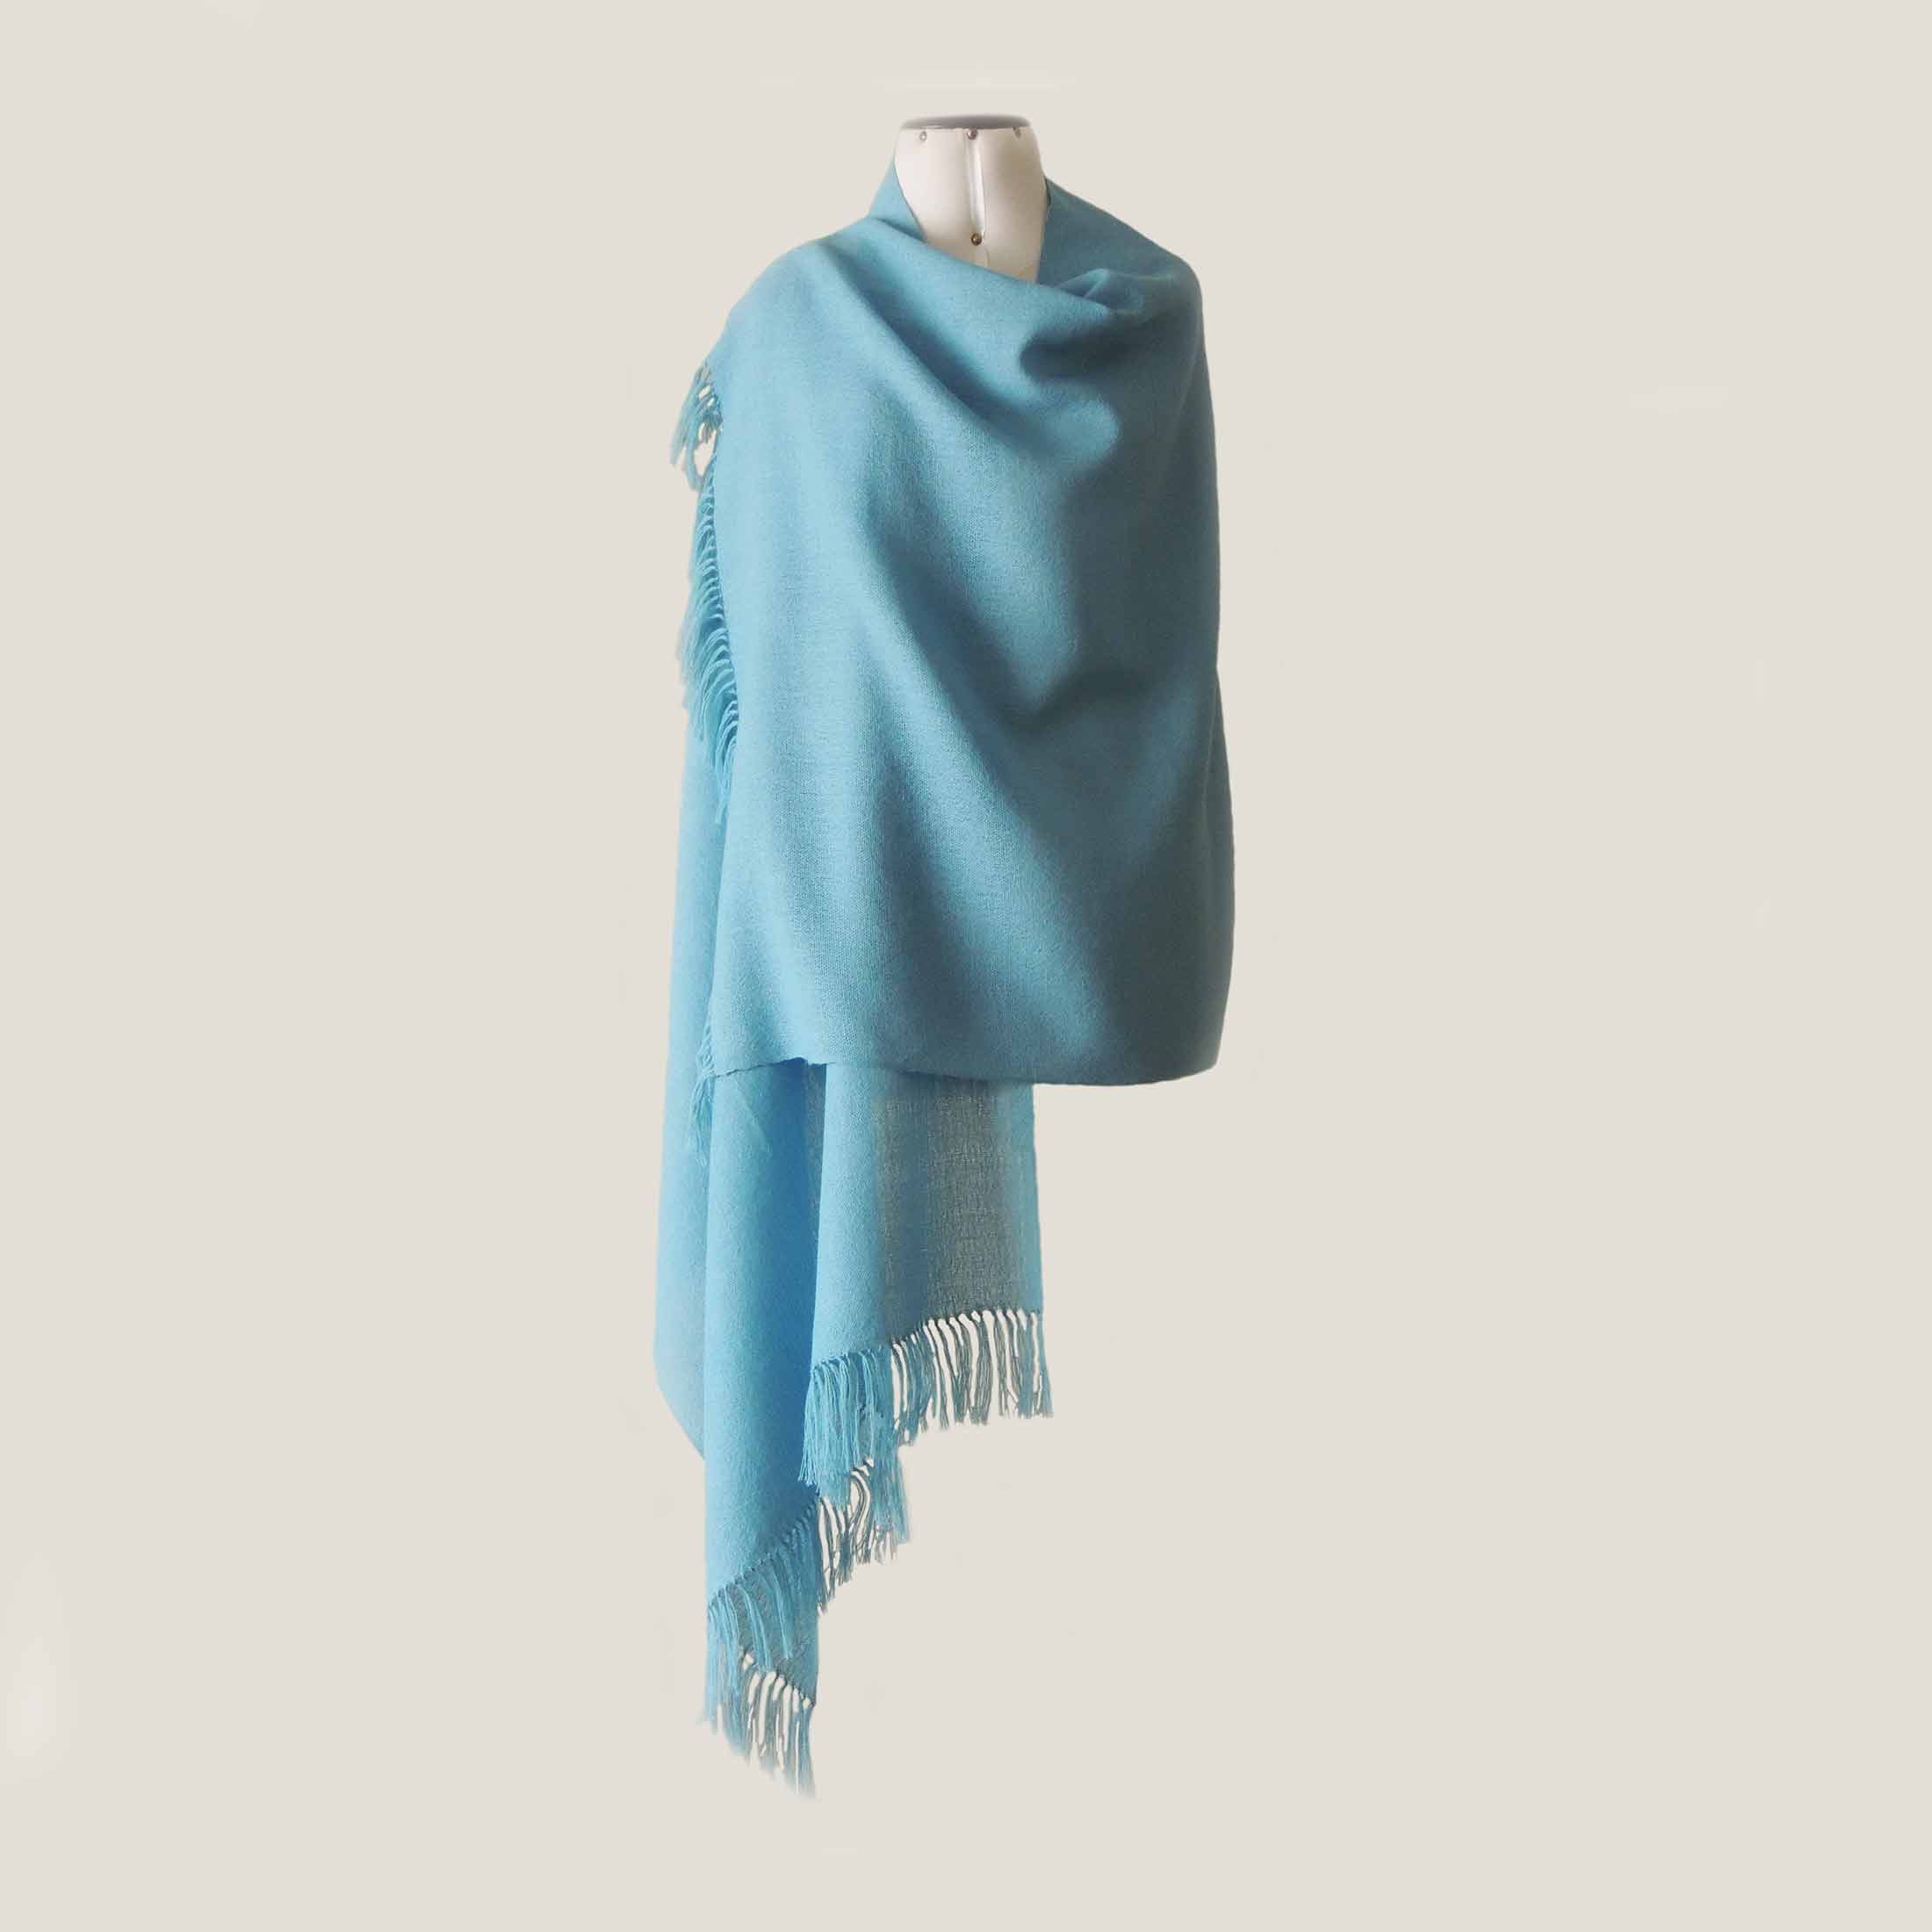 Popsfl Peru wholesale manufactor handwovenHandwoven shawl, baby alpaca solid color